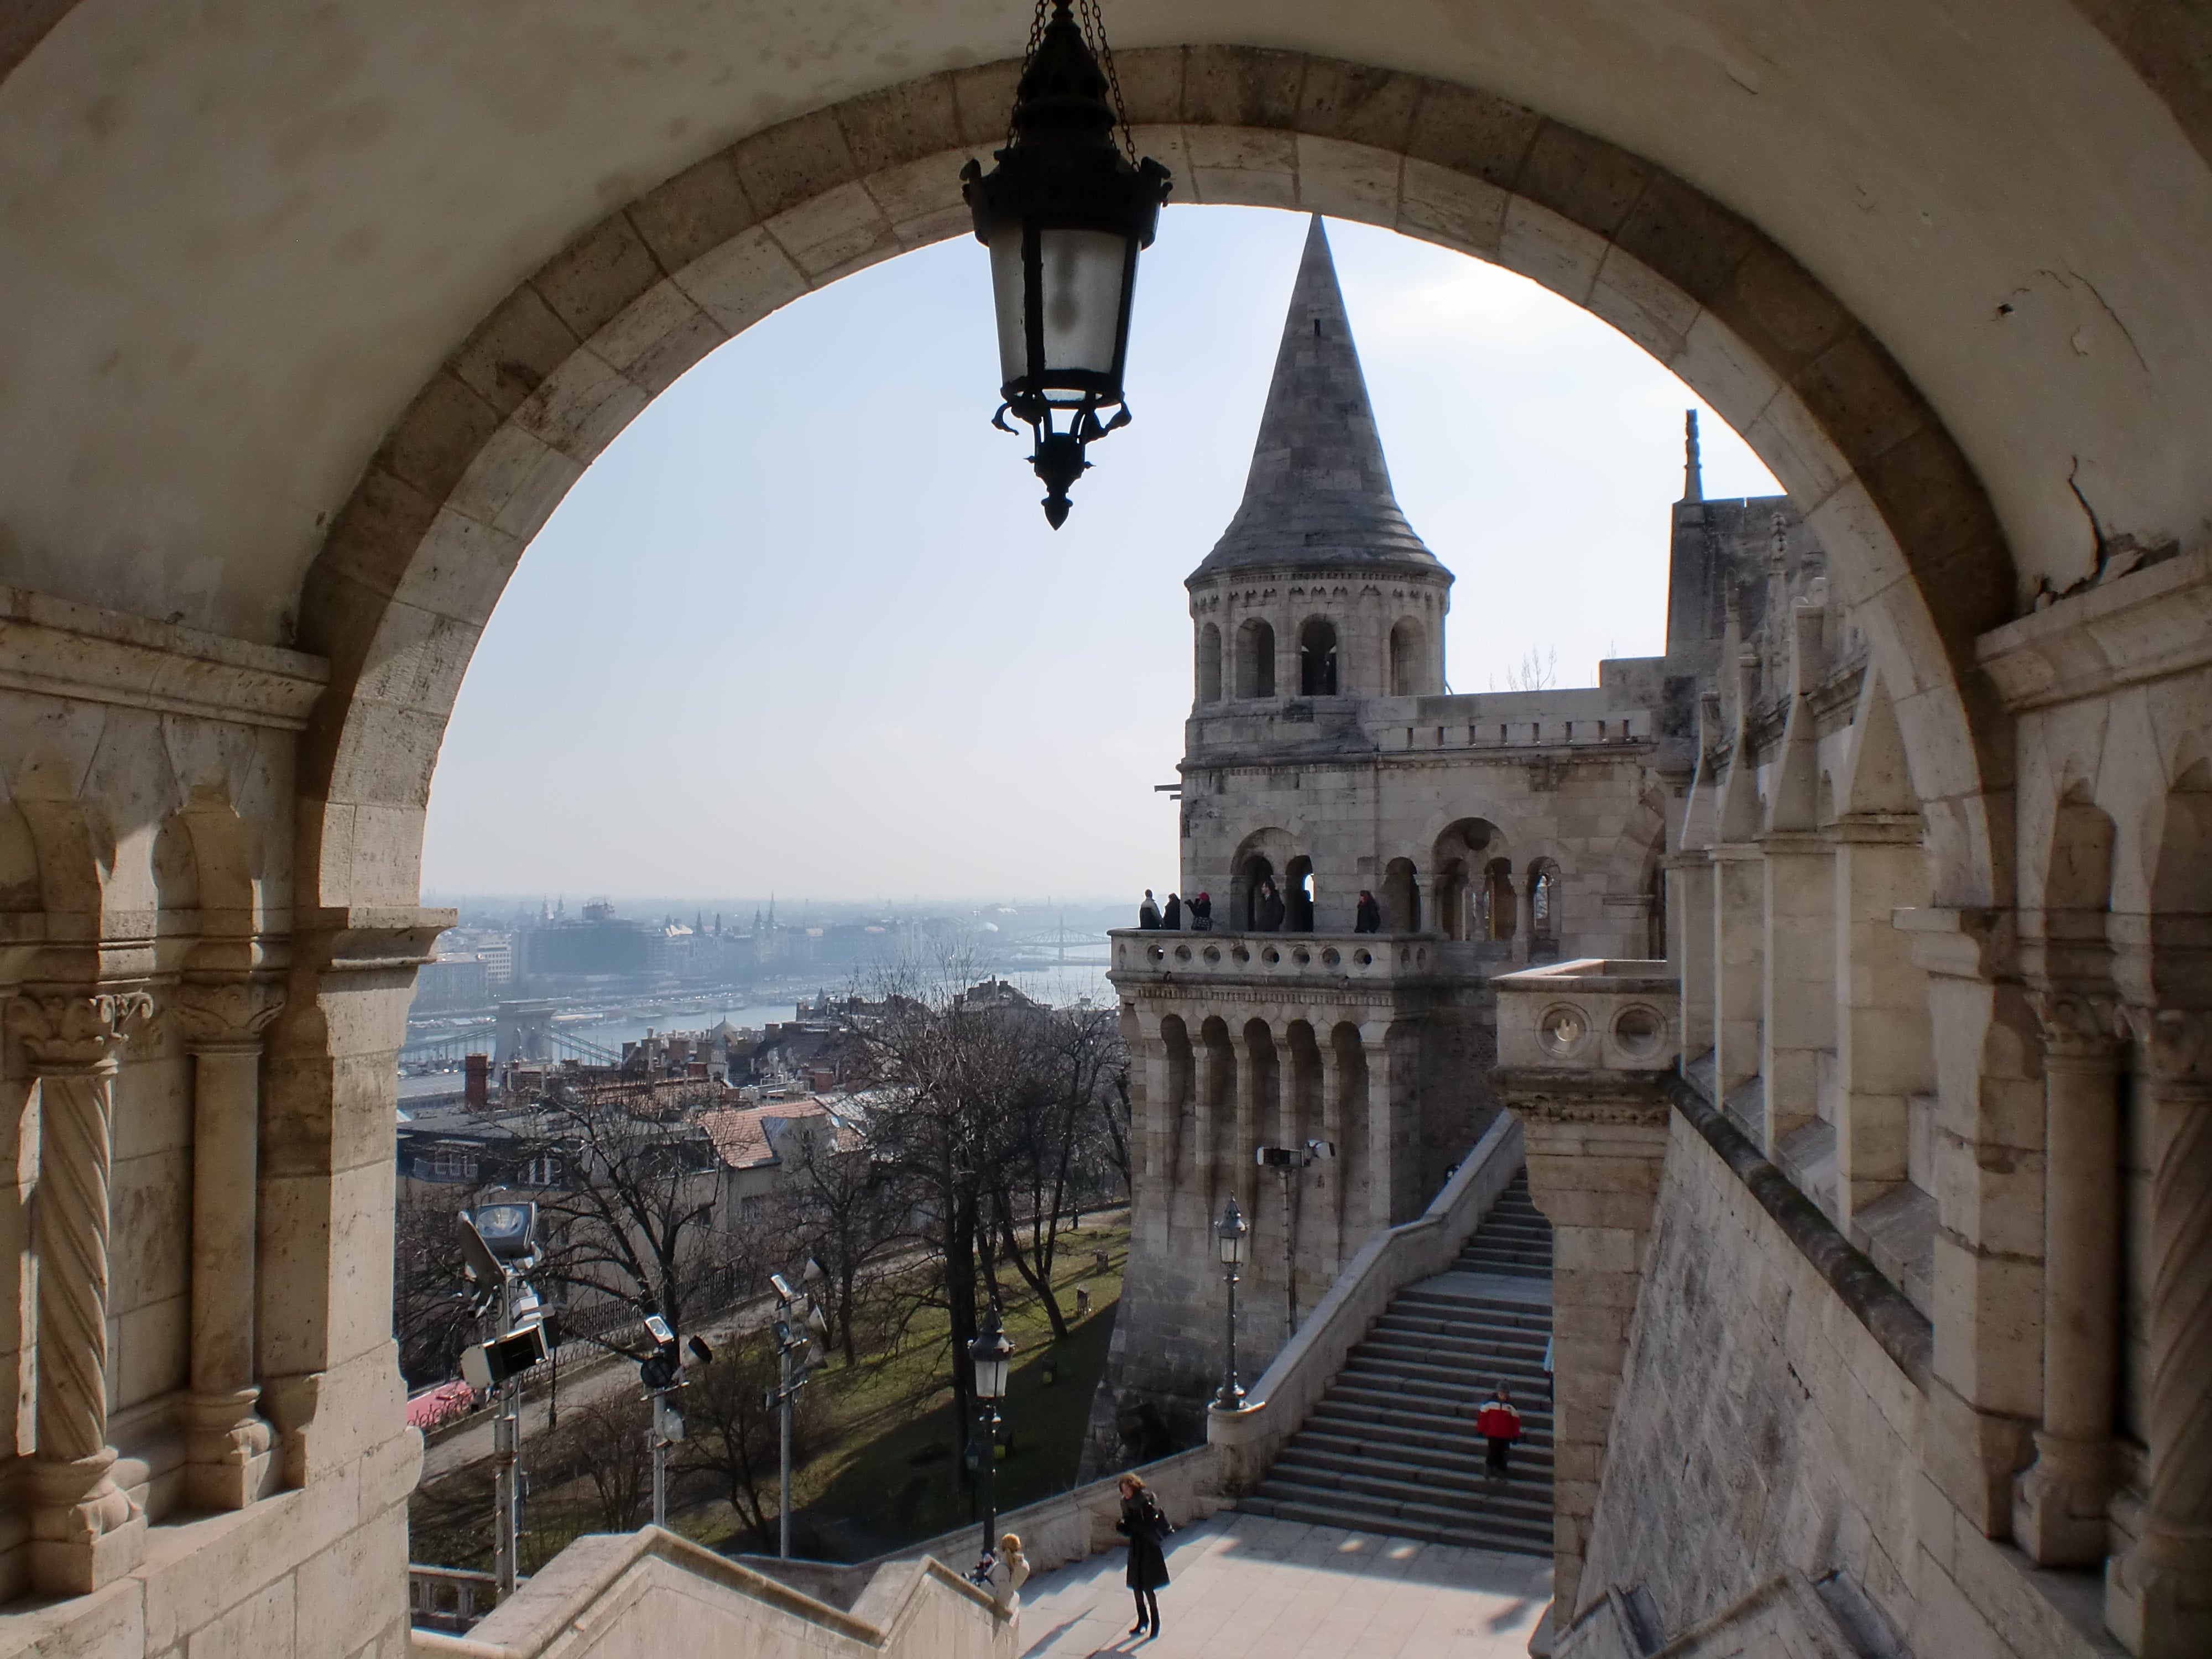 Fortification in Fisherman's Bastion